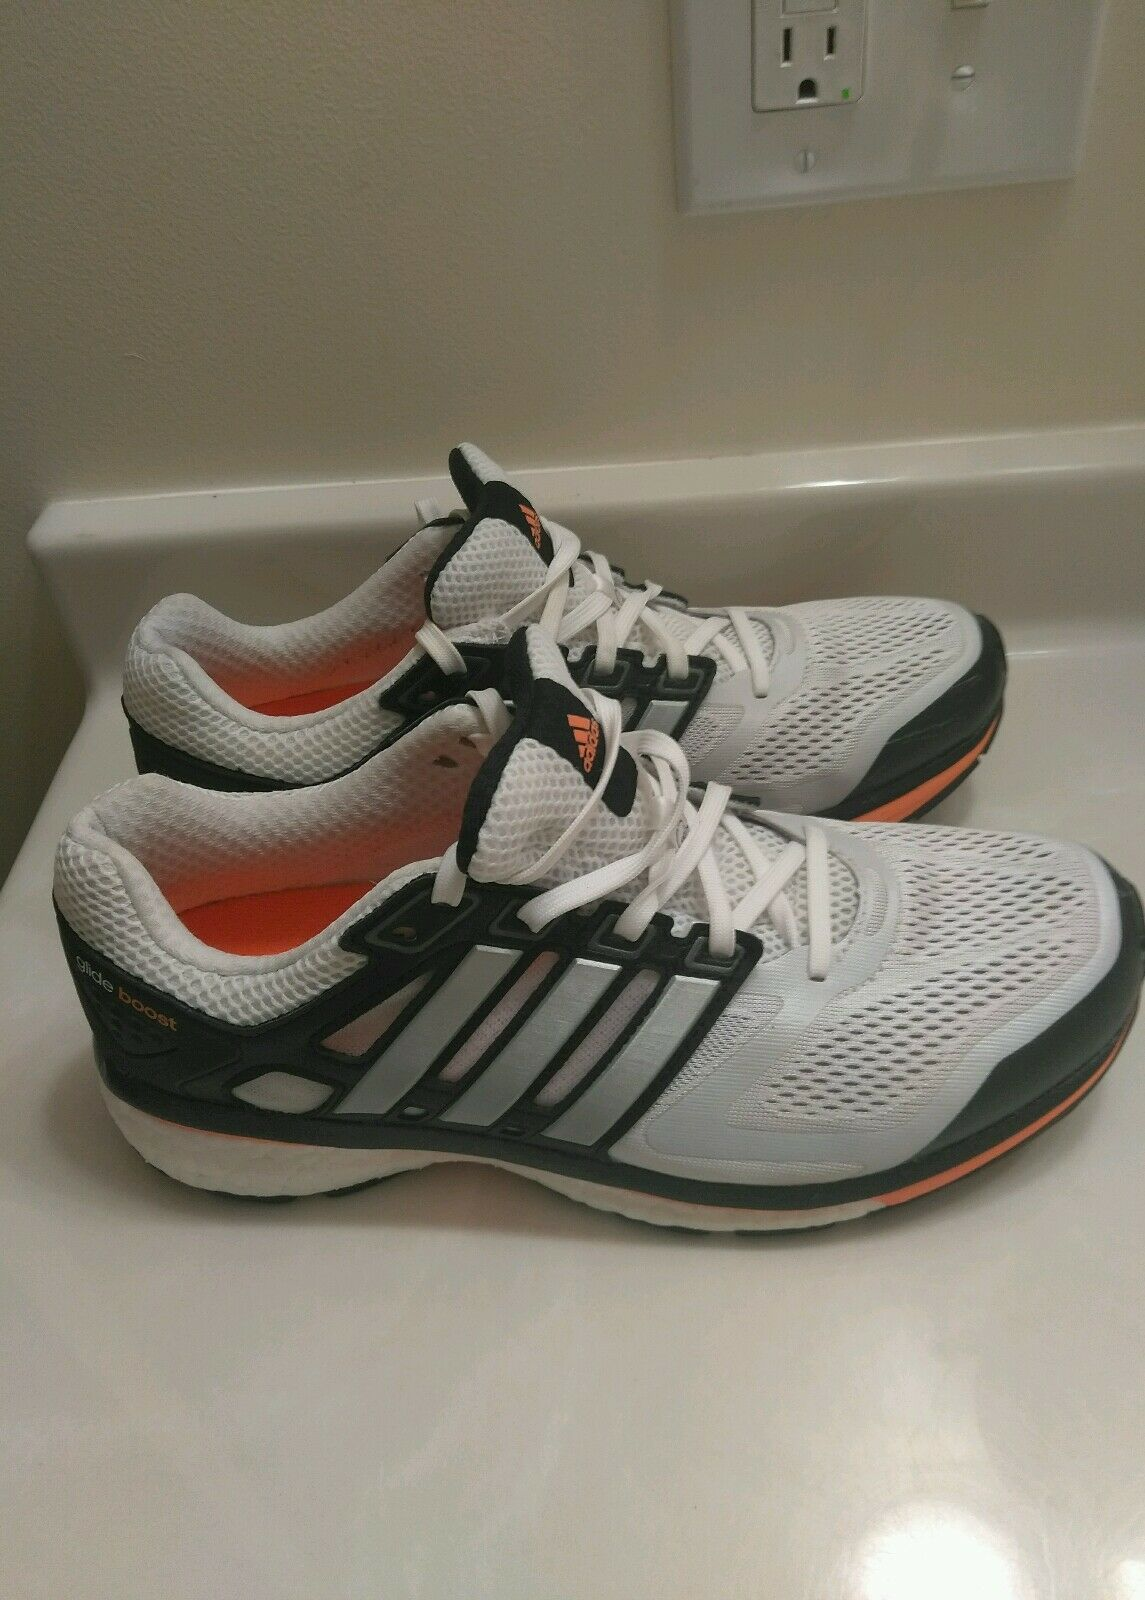 Adidas Men Supernova Glide Boost Running Shoes White/Black Price reduction Casual wild